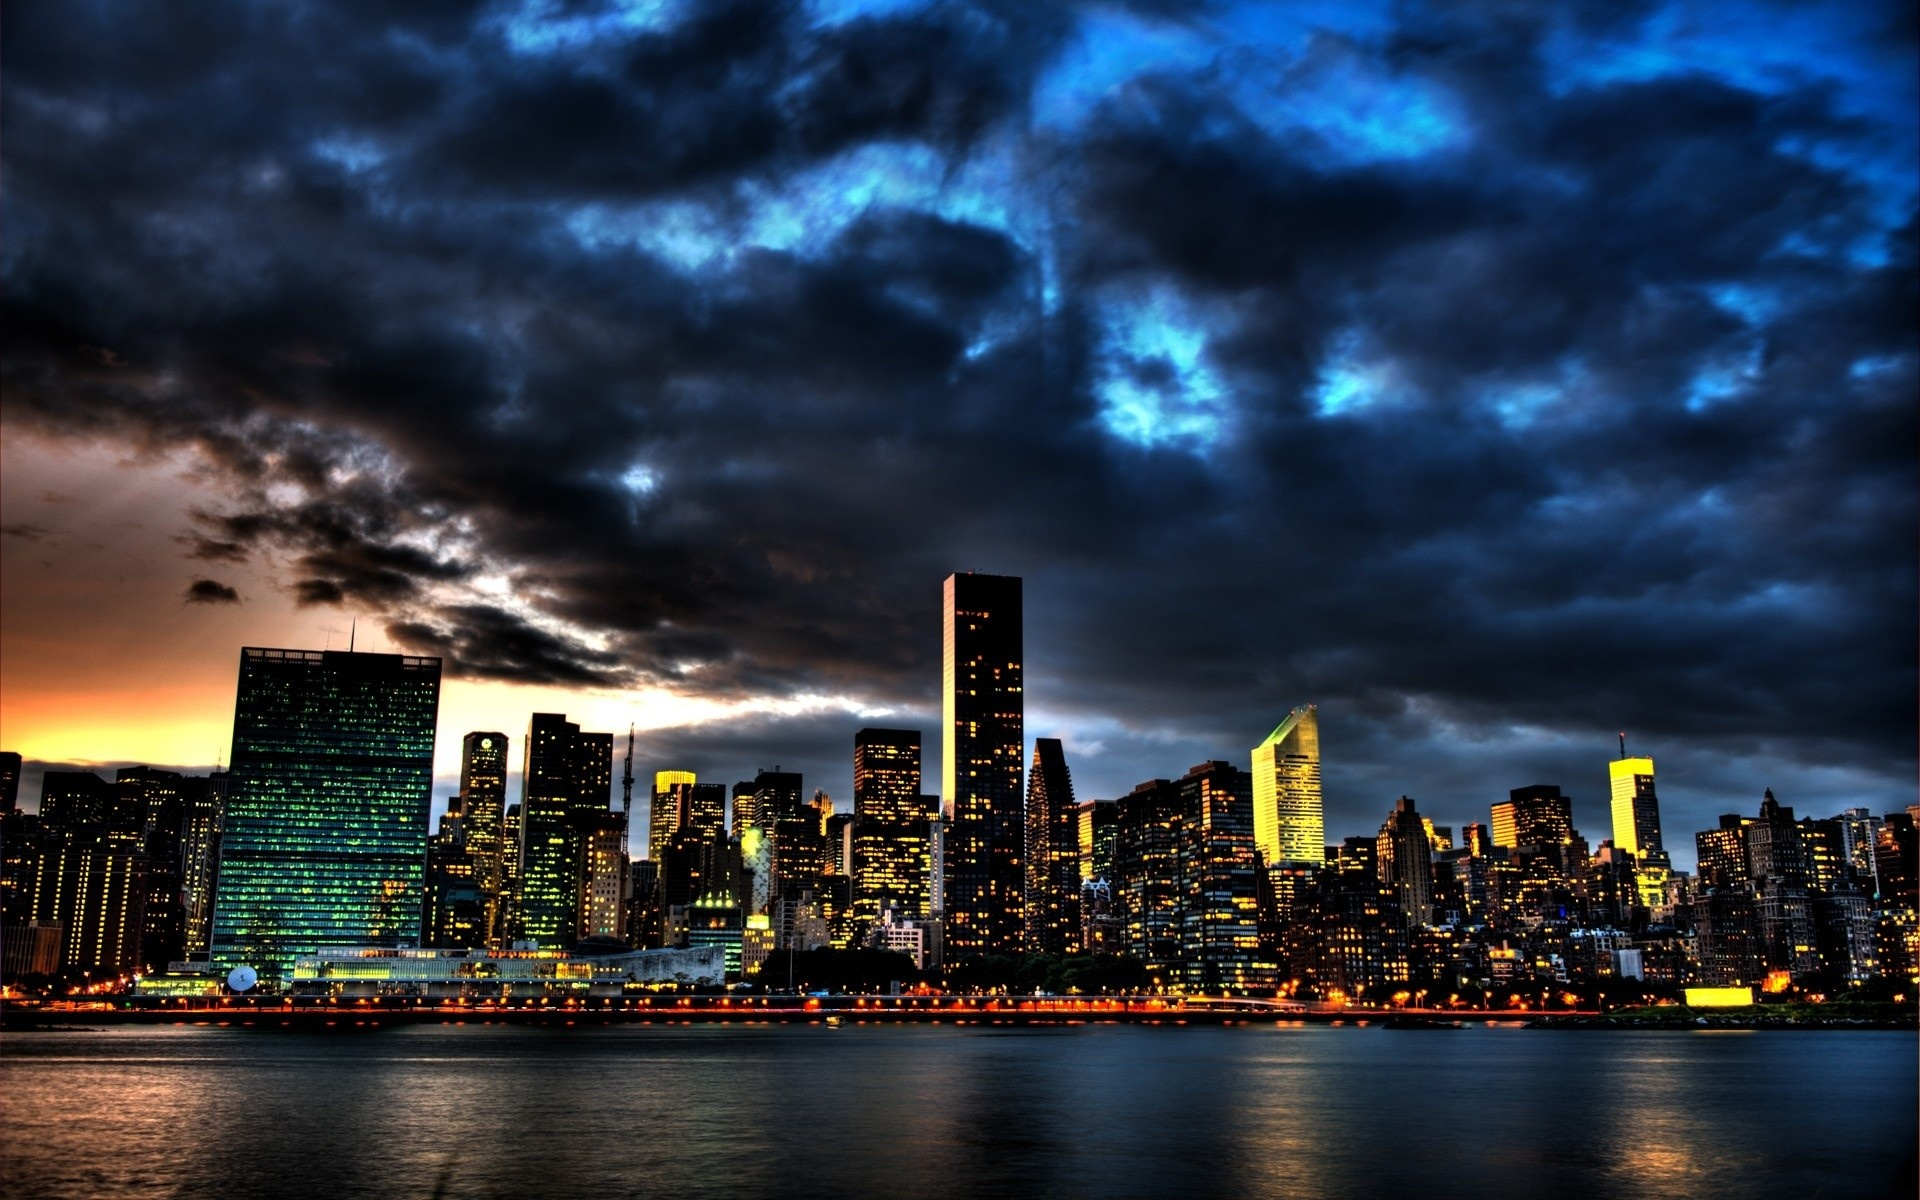 clouds over new york - photo #9